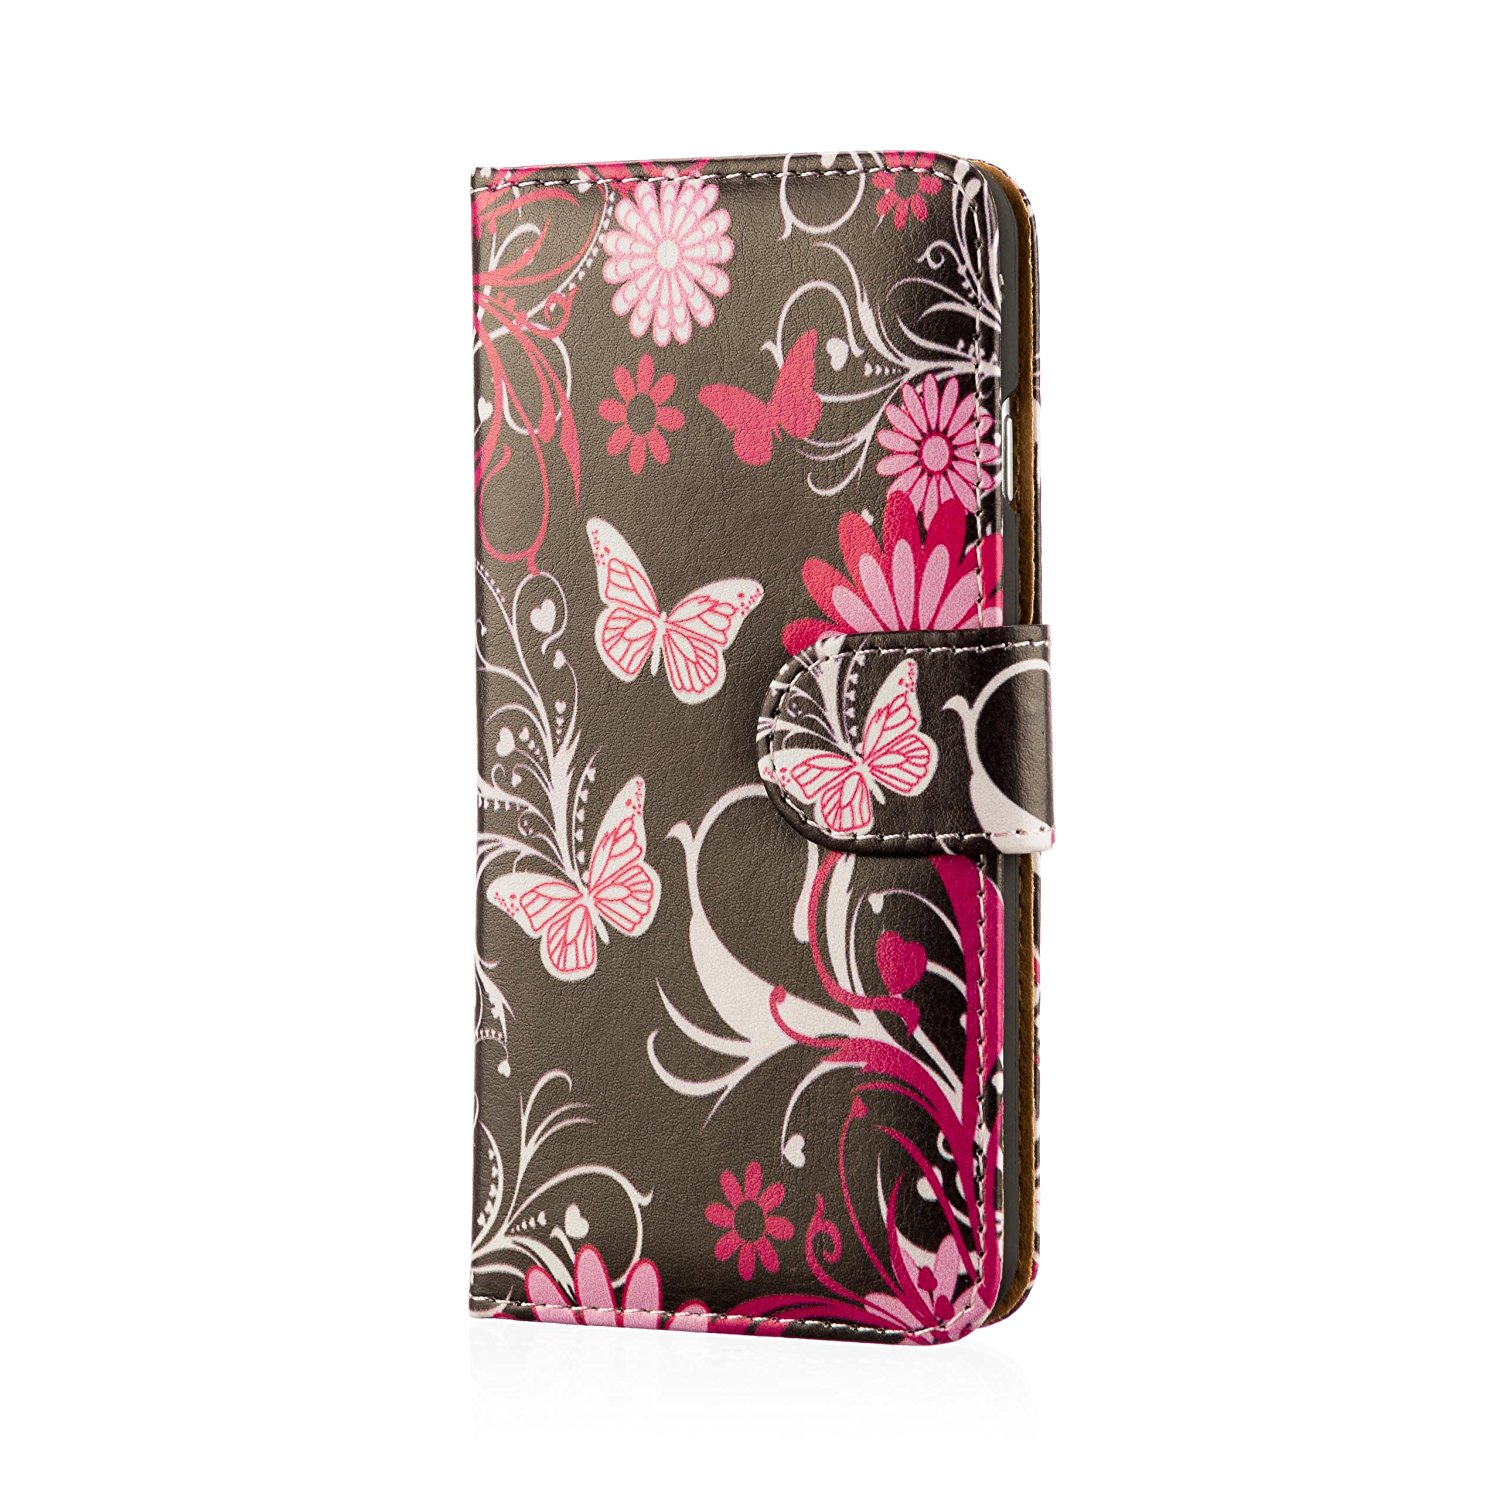 32nd Design book wallet PU leather case cover for HTC Desire 610, including screen protector and cleaning cloth - Gerbera